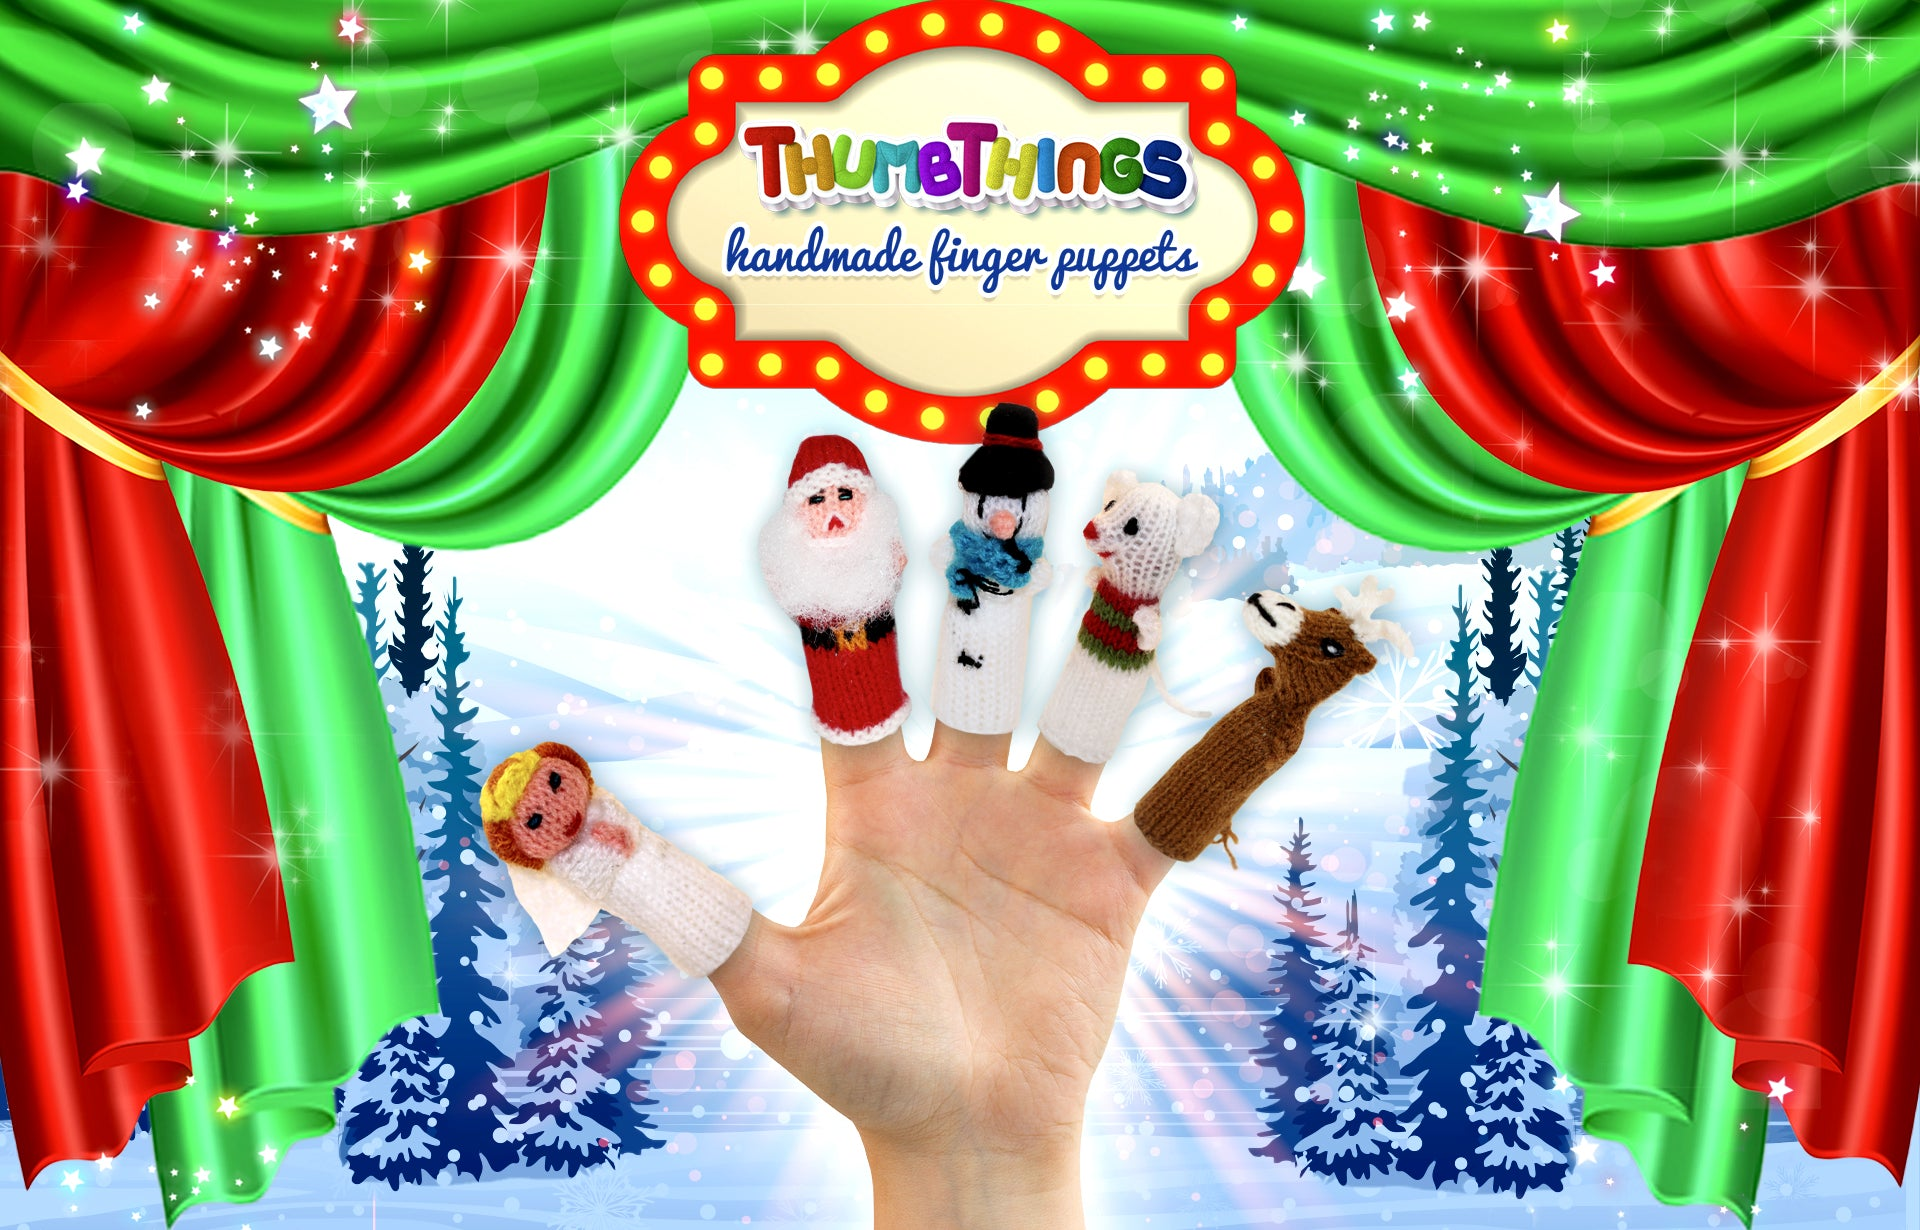 Christmas Character finger puppets by Thumbthings finger puppets